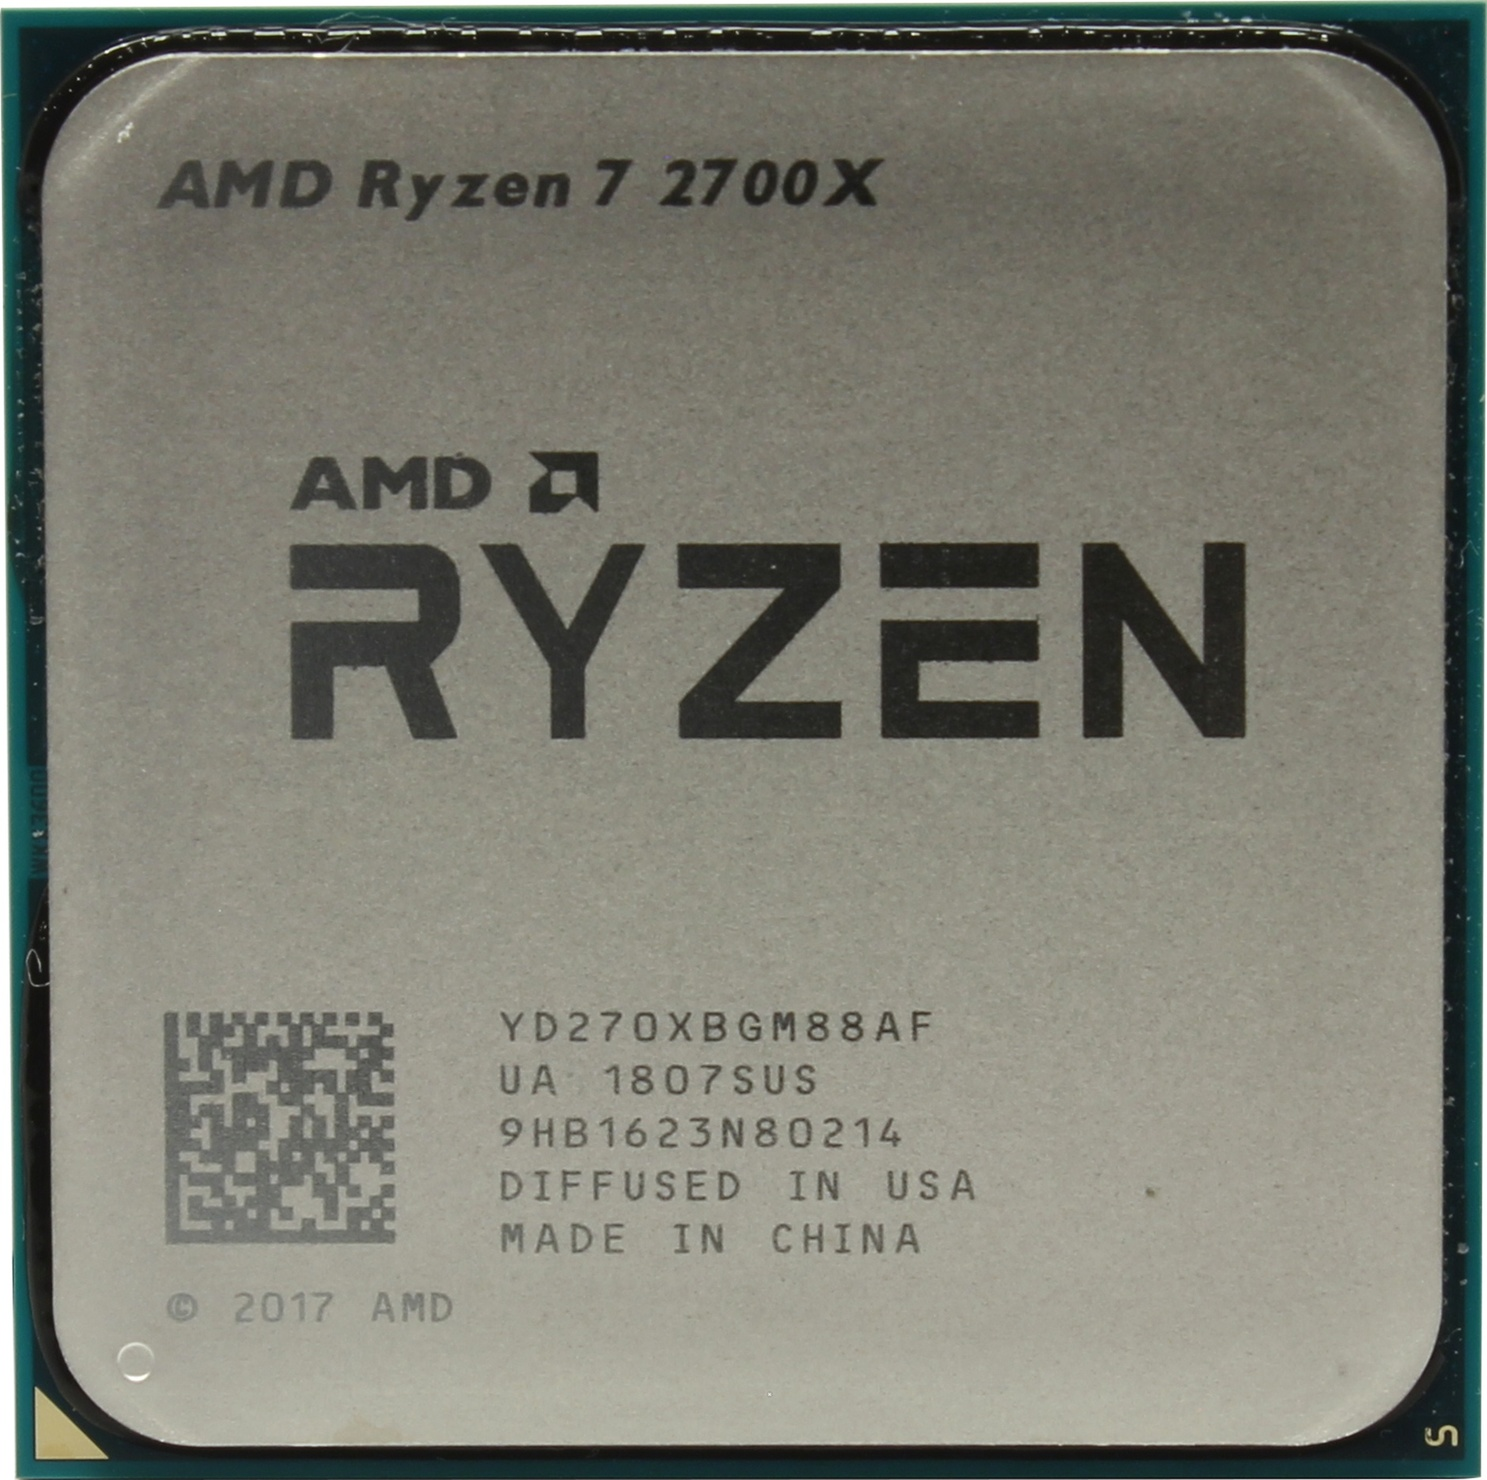 Процессор CPU AM4 AMD Ryzen 7 2700X TRAY <4.35GHz, 105W, 8C/16T, 20MB(L2+L3)>